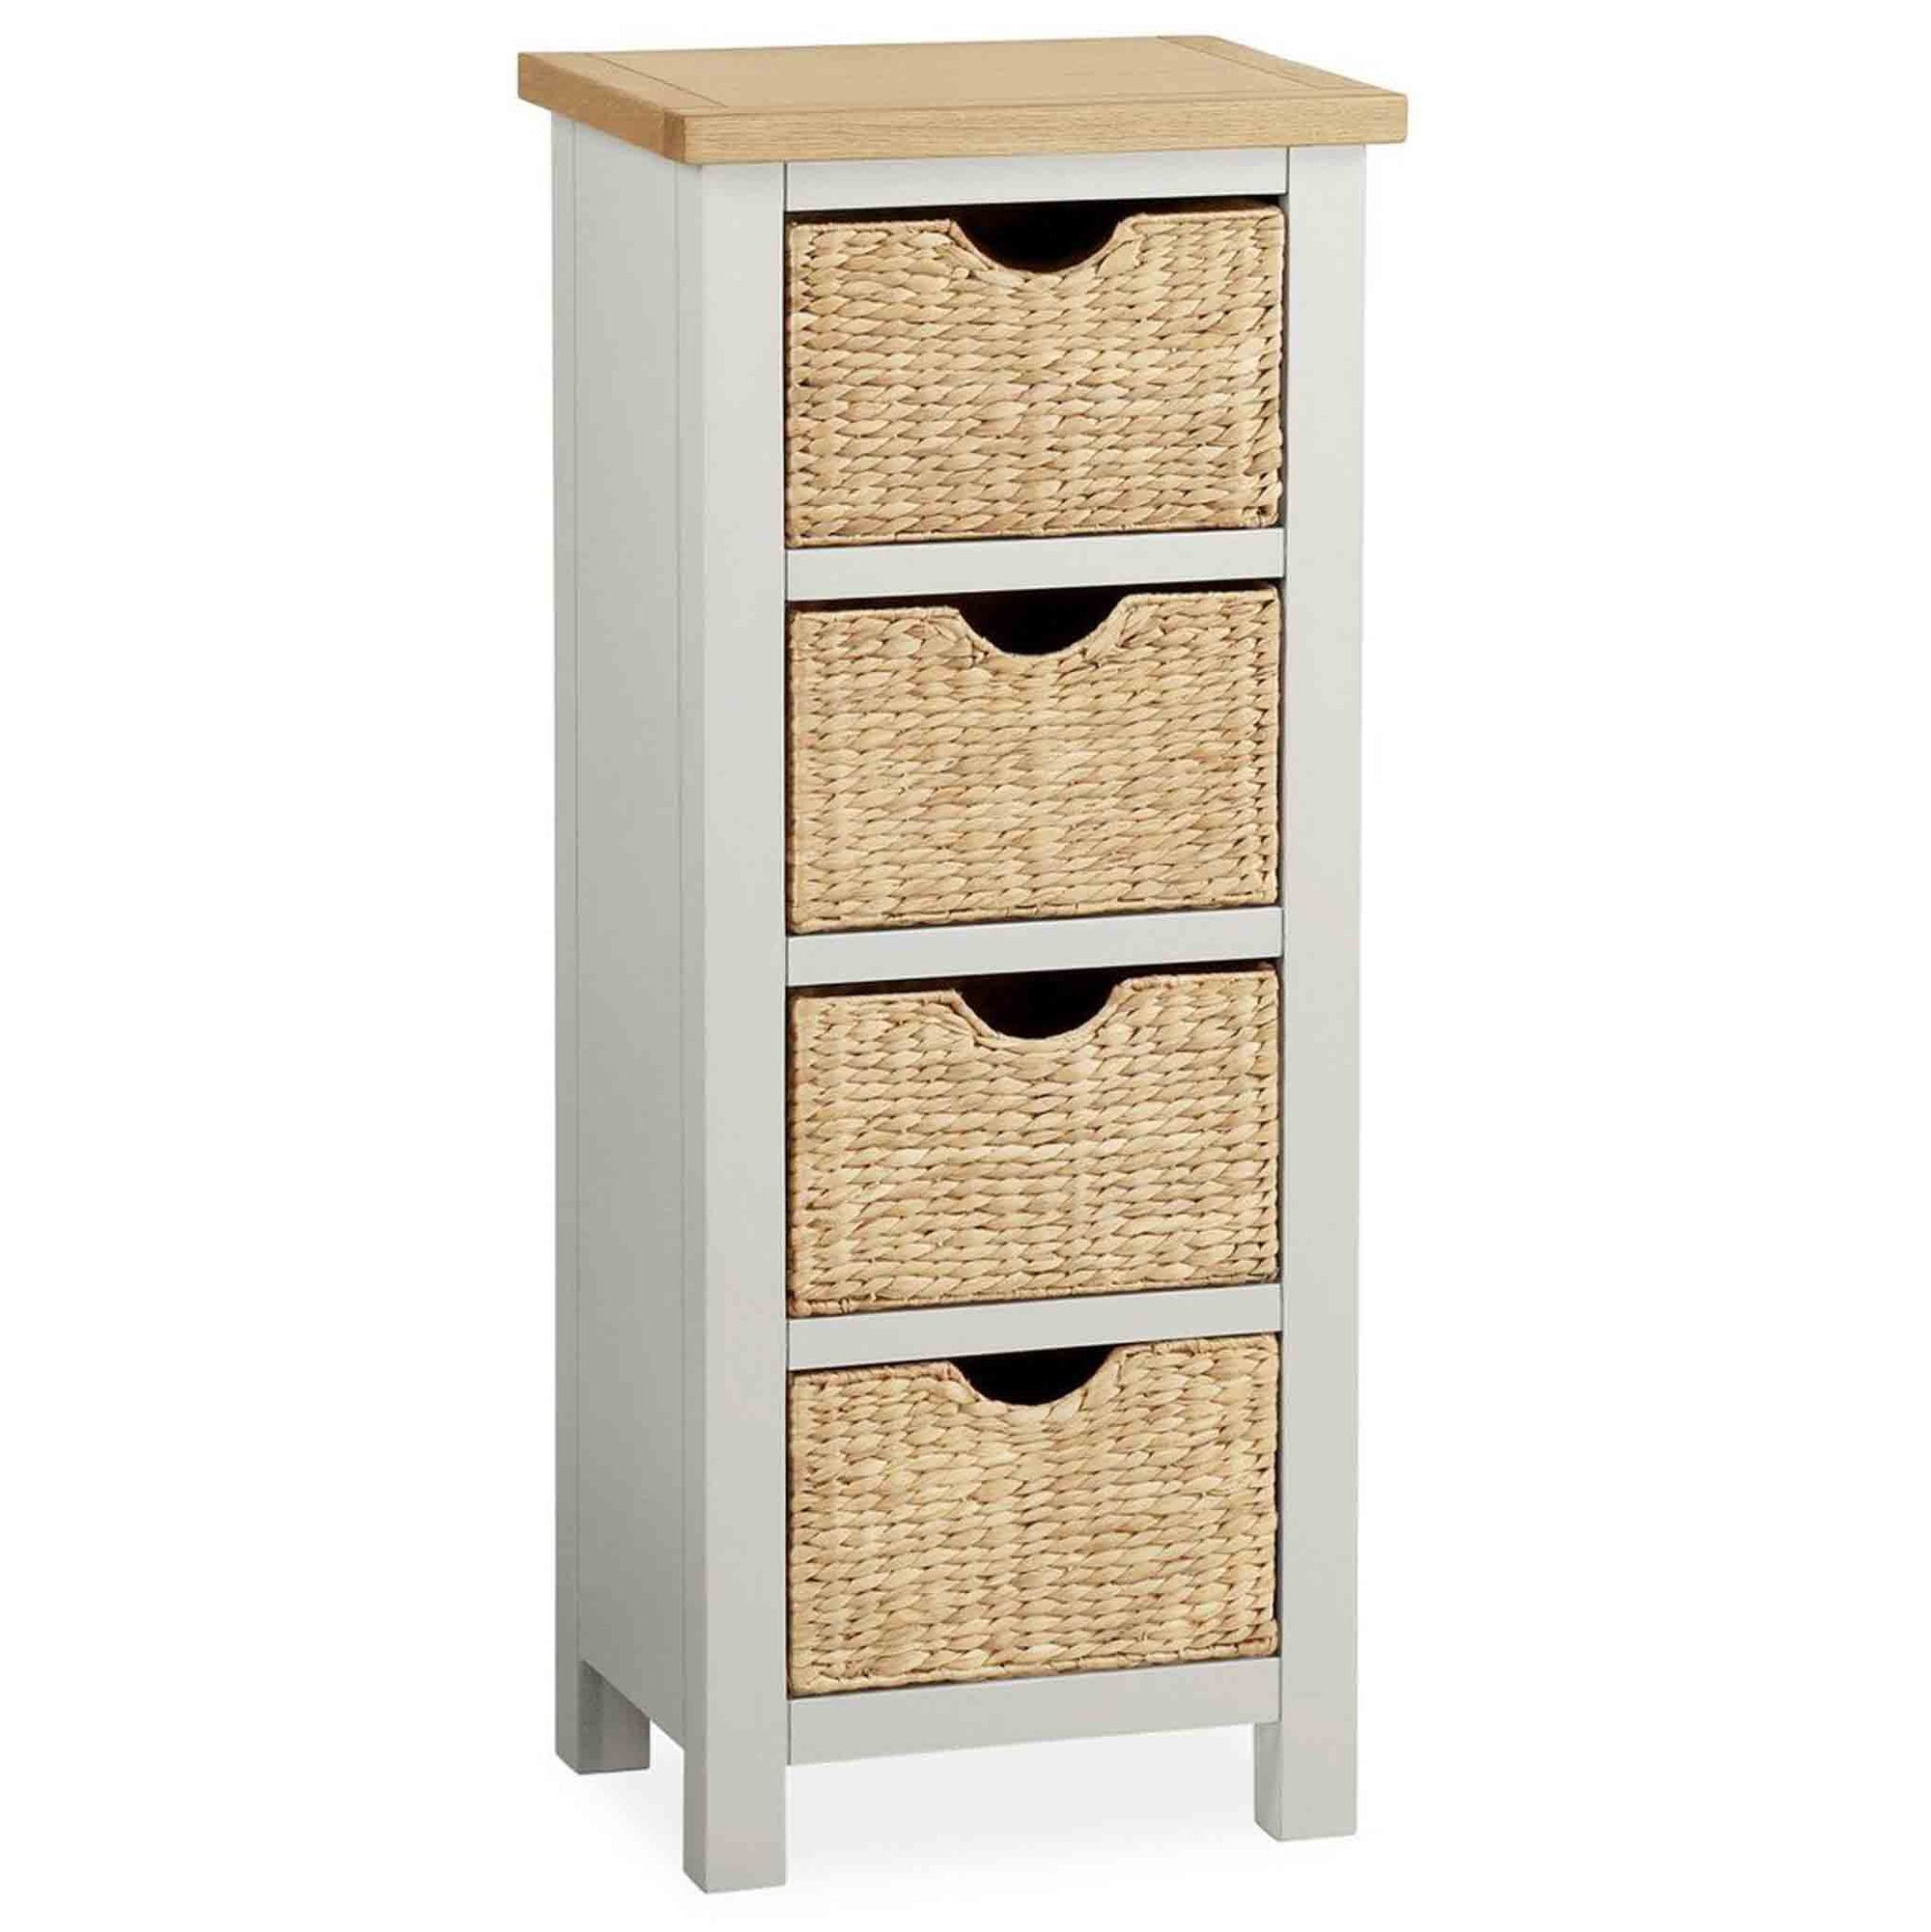 The Farrow Grey Tallboy Chest with Baskets by Roseland Furniture